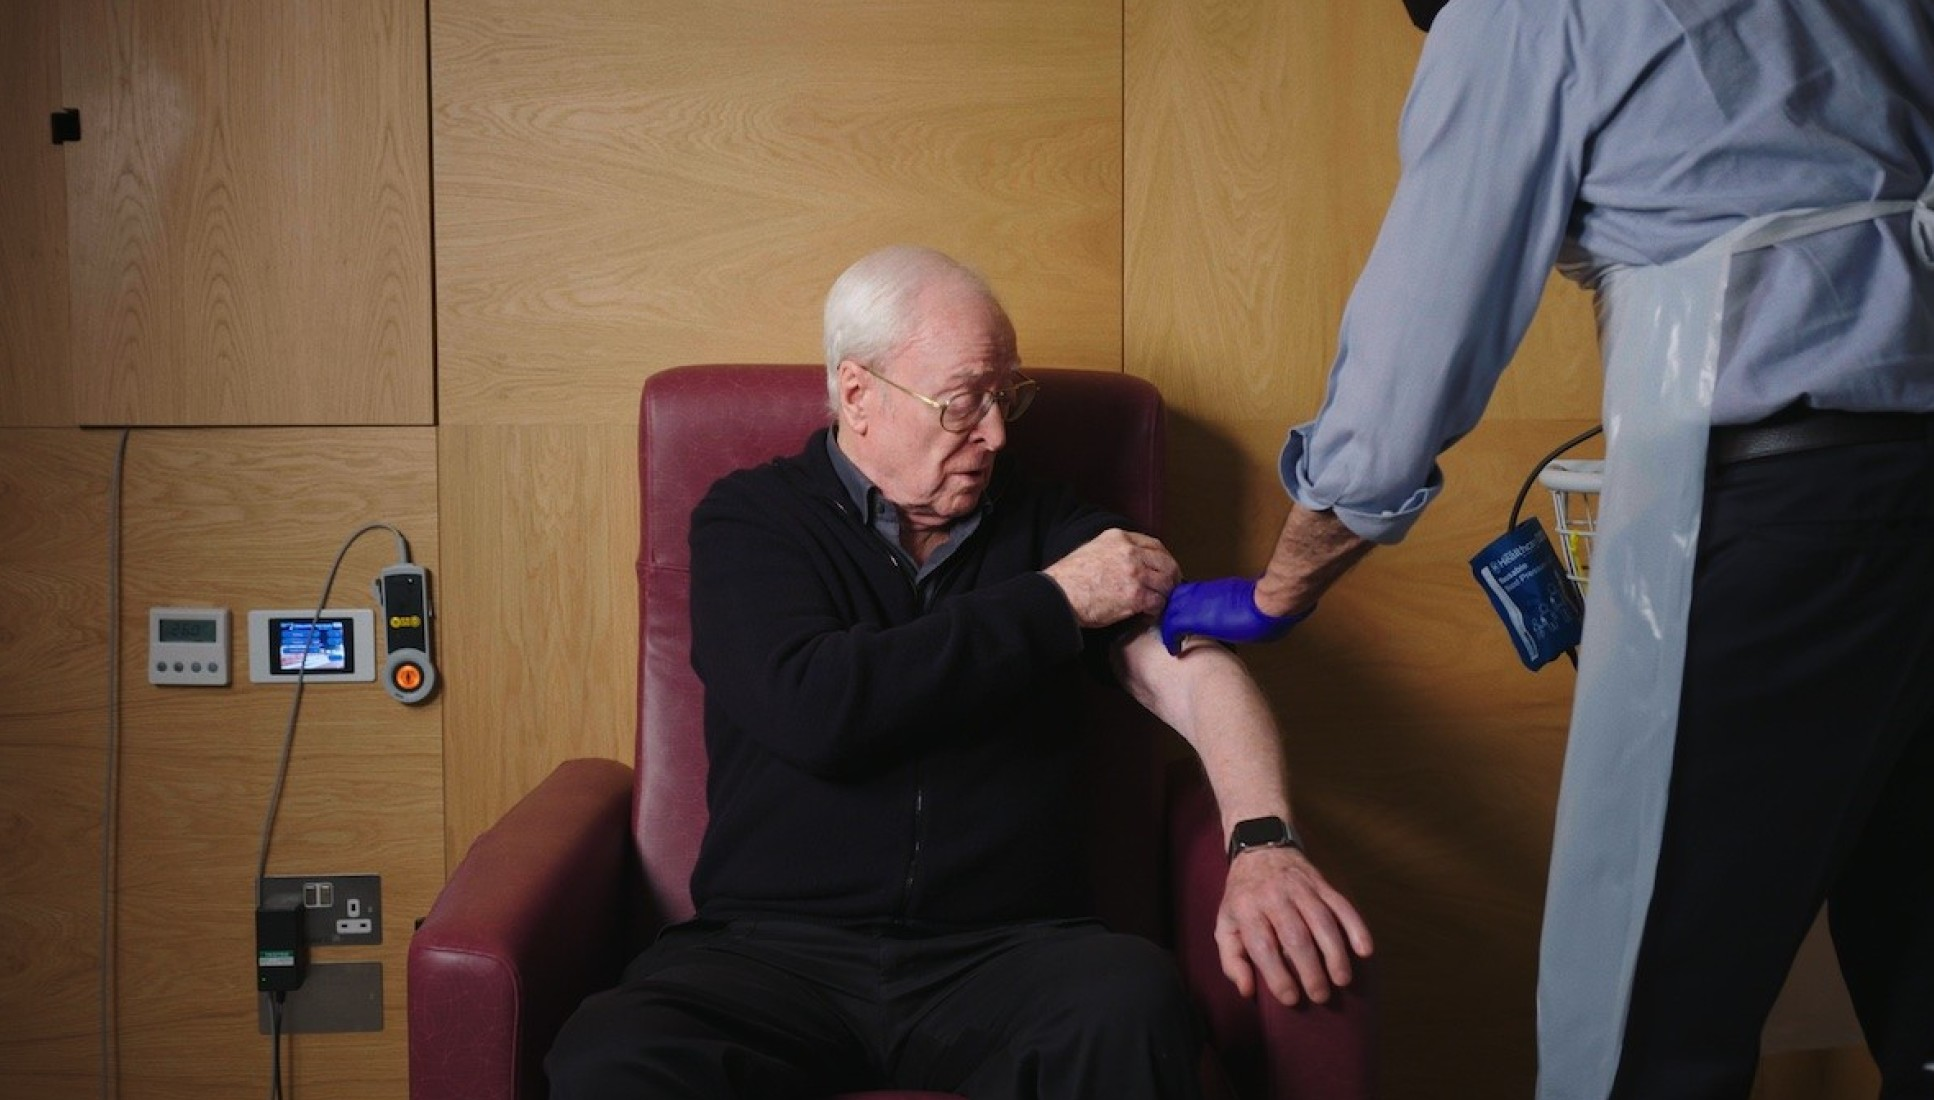 Sir Michael Caine bearing his arm with a health worker